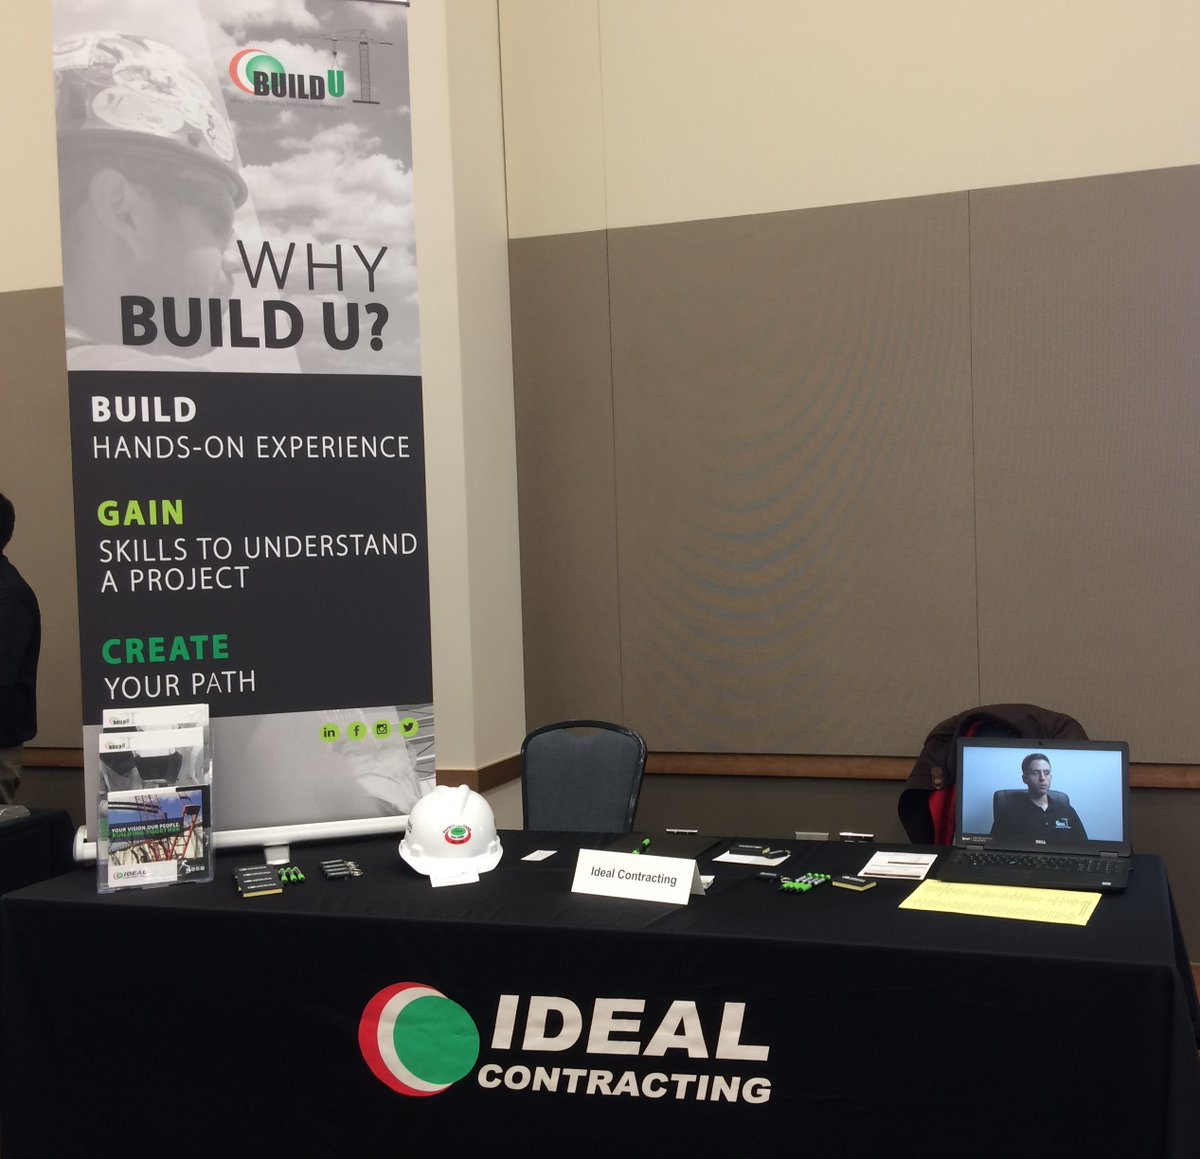 test Twitter Media - We are at the Oakland University Career Fair. Stop by table 17 in the Founders room, we look forward to meeting you! https://t.co/oLAFXnW7hU